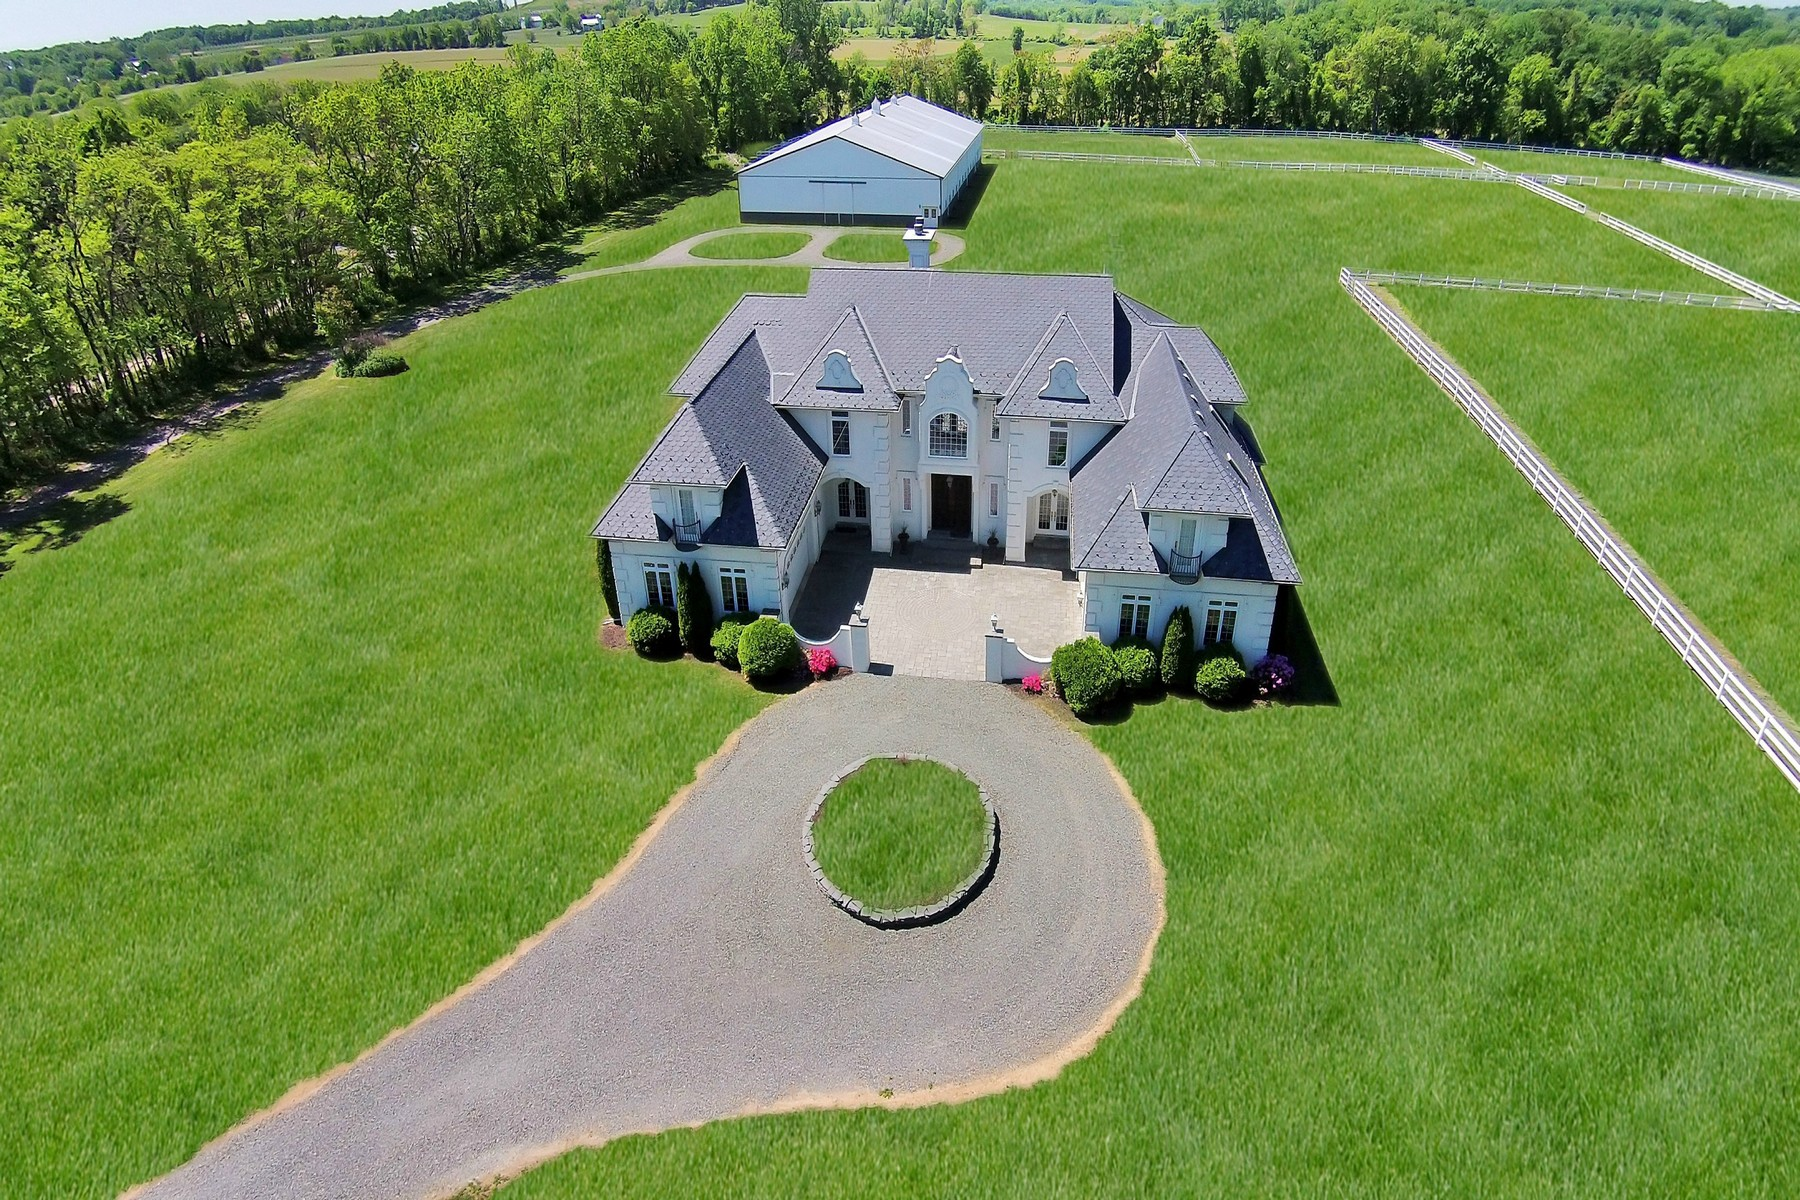 Single Family Home for Sale at Luxurious French Manor 3-5 Hill and Dale Tewksbury Township, 08833 United States